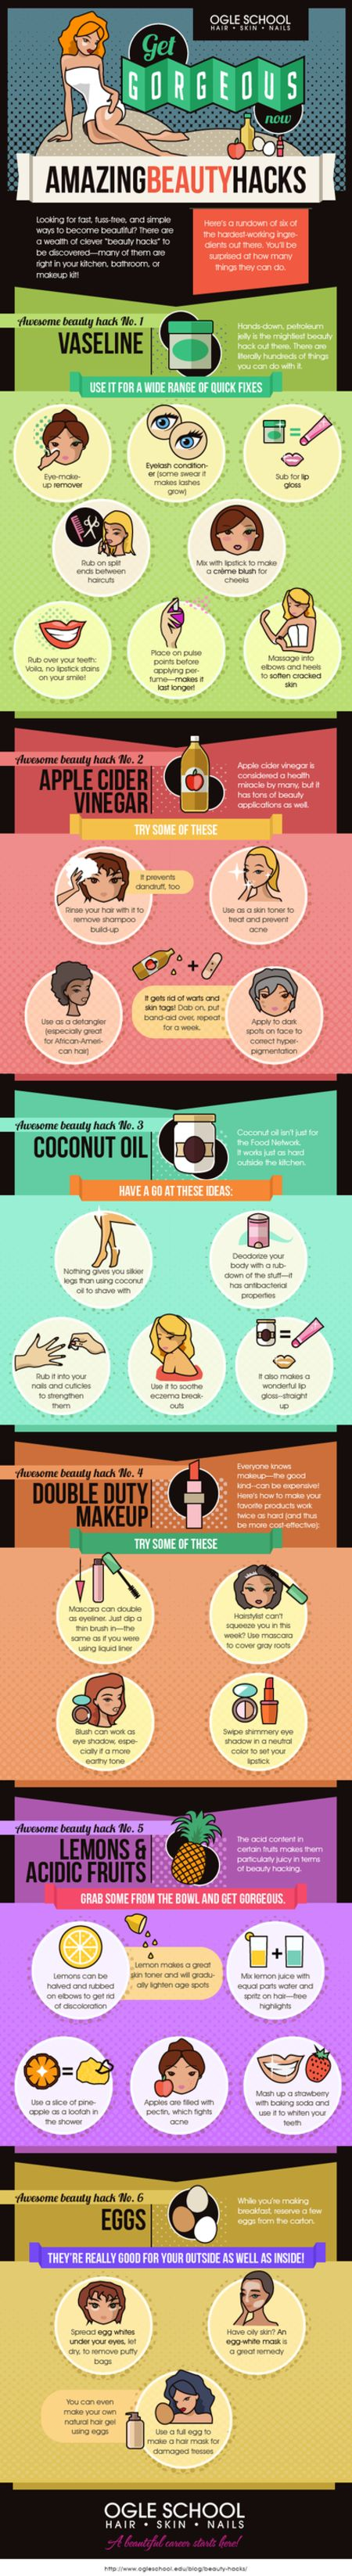 6 Amazing Beauty Hacks for Beautiful Skin and Hair (Infograp